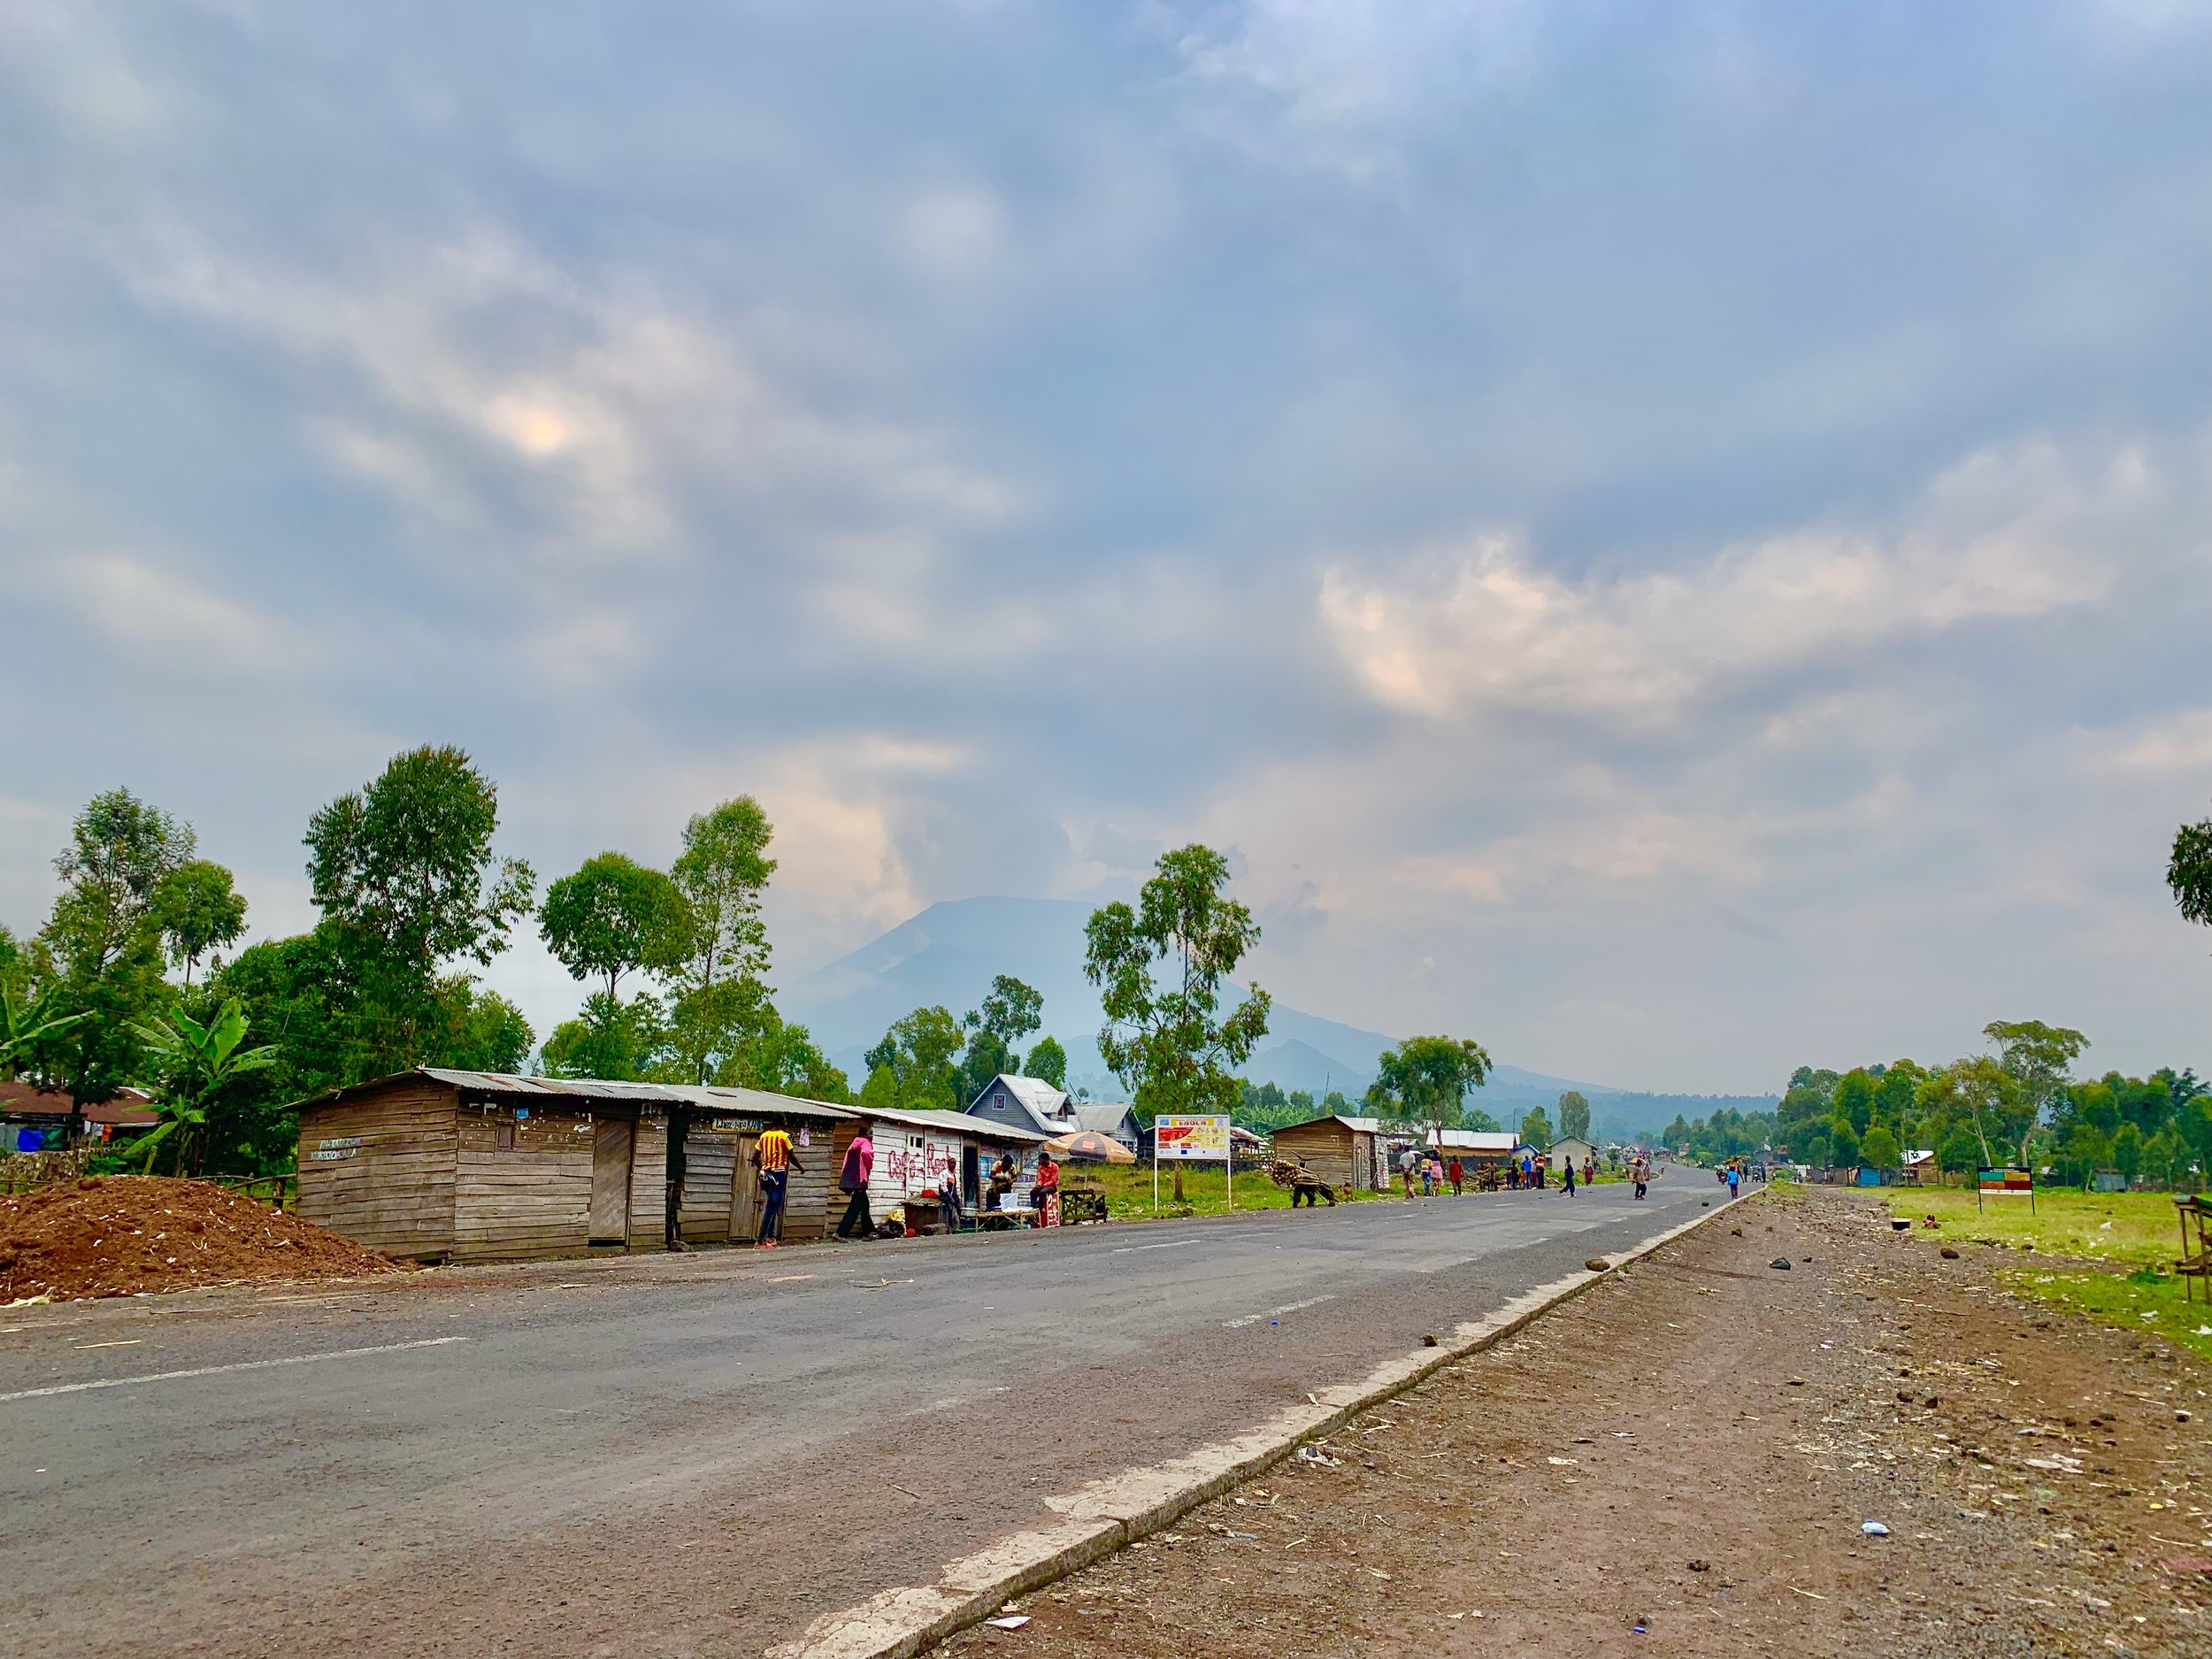 The checkpoint where we met our escorts into the park. You can Nyiragonog in the distance